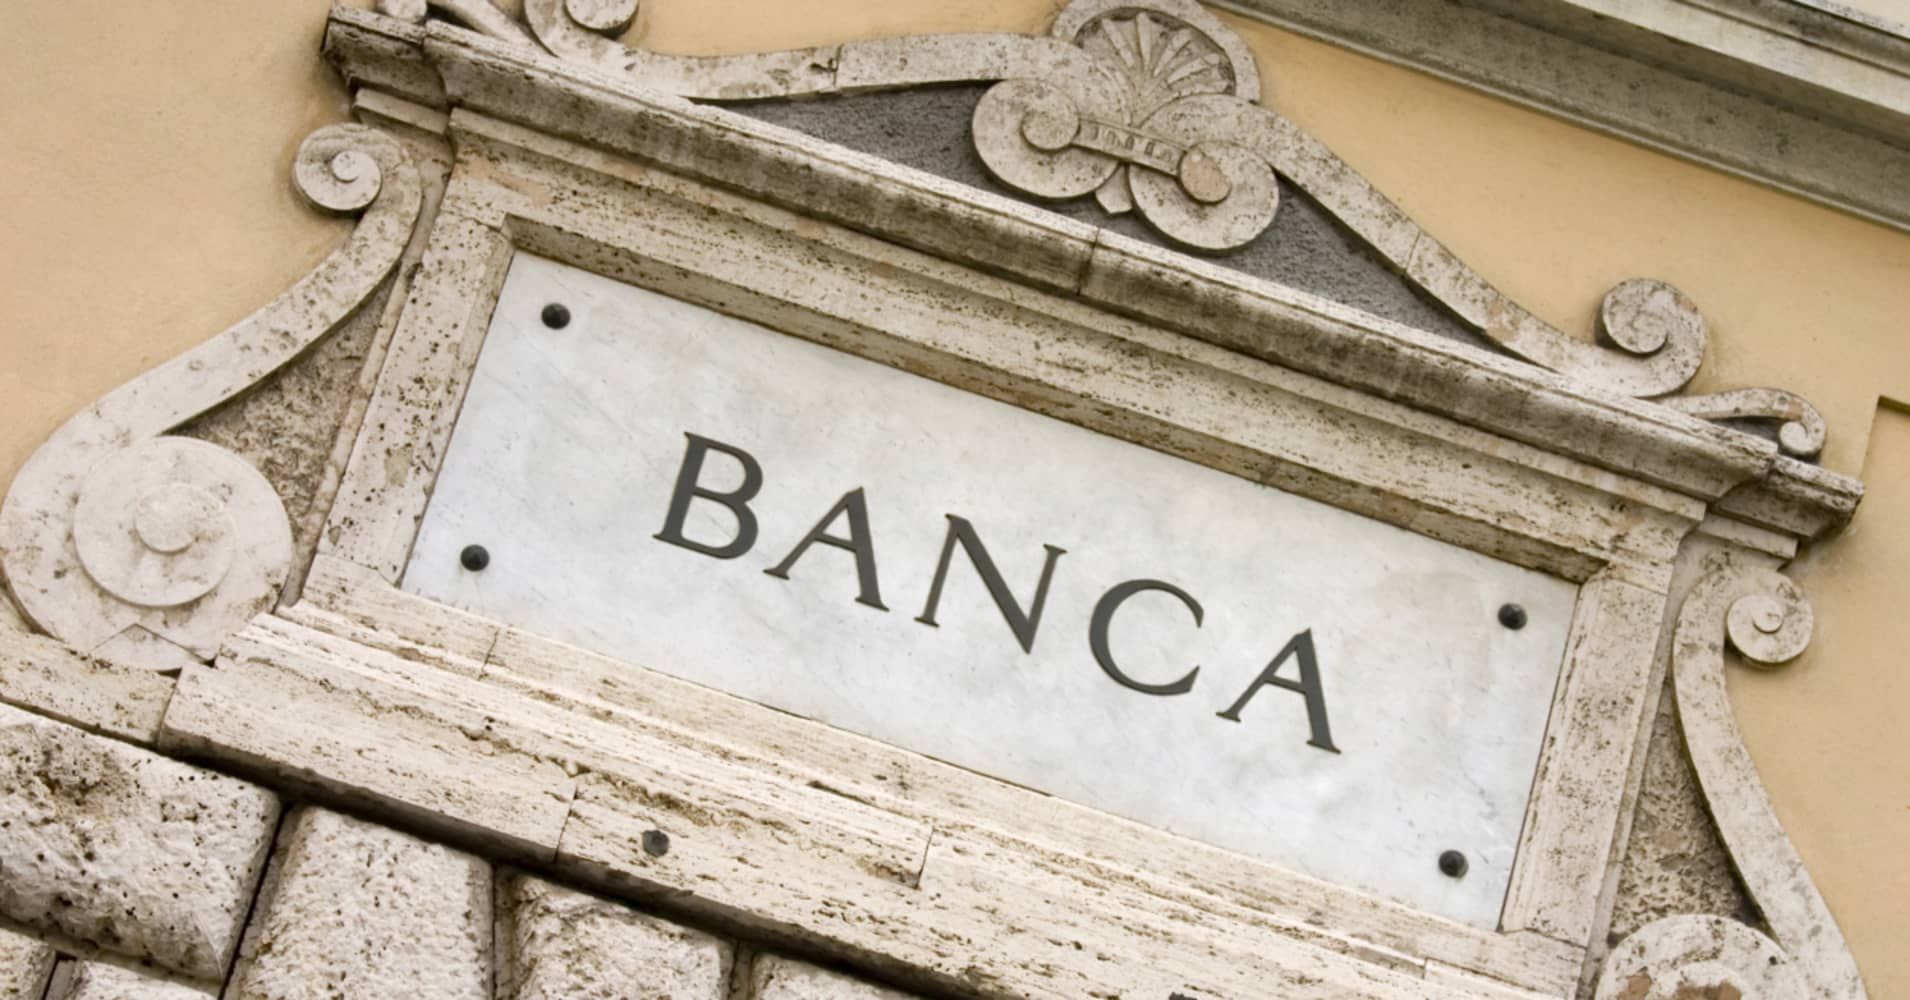 Despite years of recovery, Italy's bank problems are still not solved